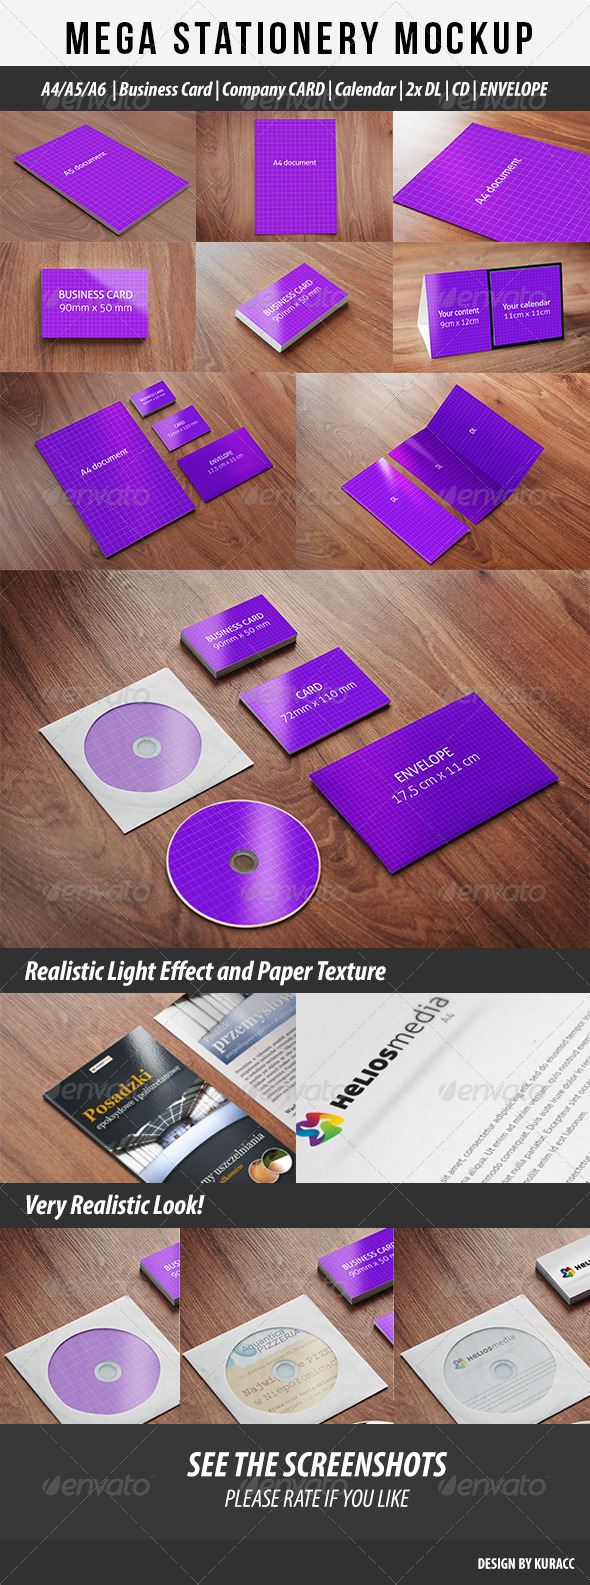 GraphicRiver Mega Stationary Mock Up 9 in 1 2995909